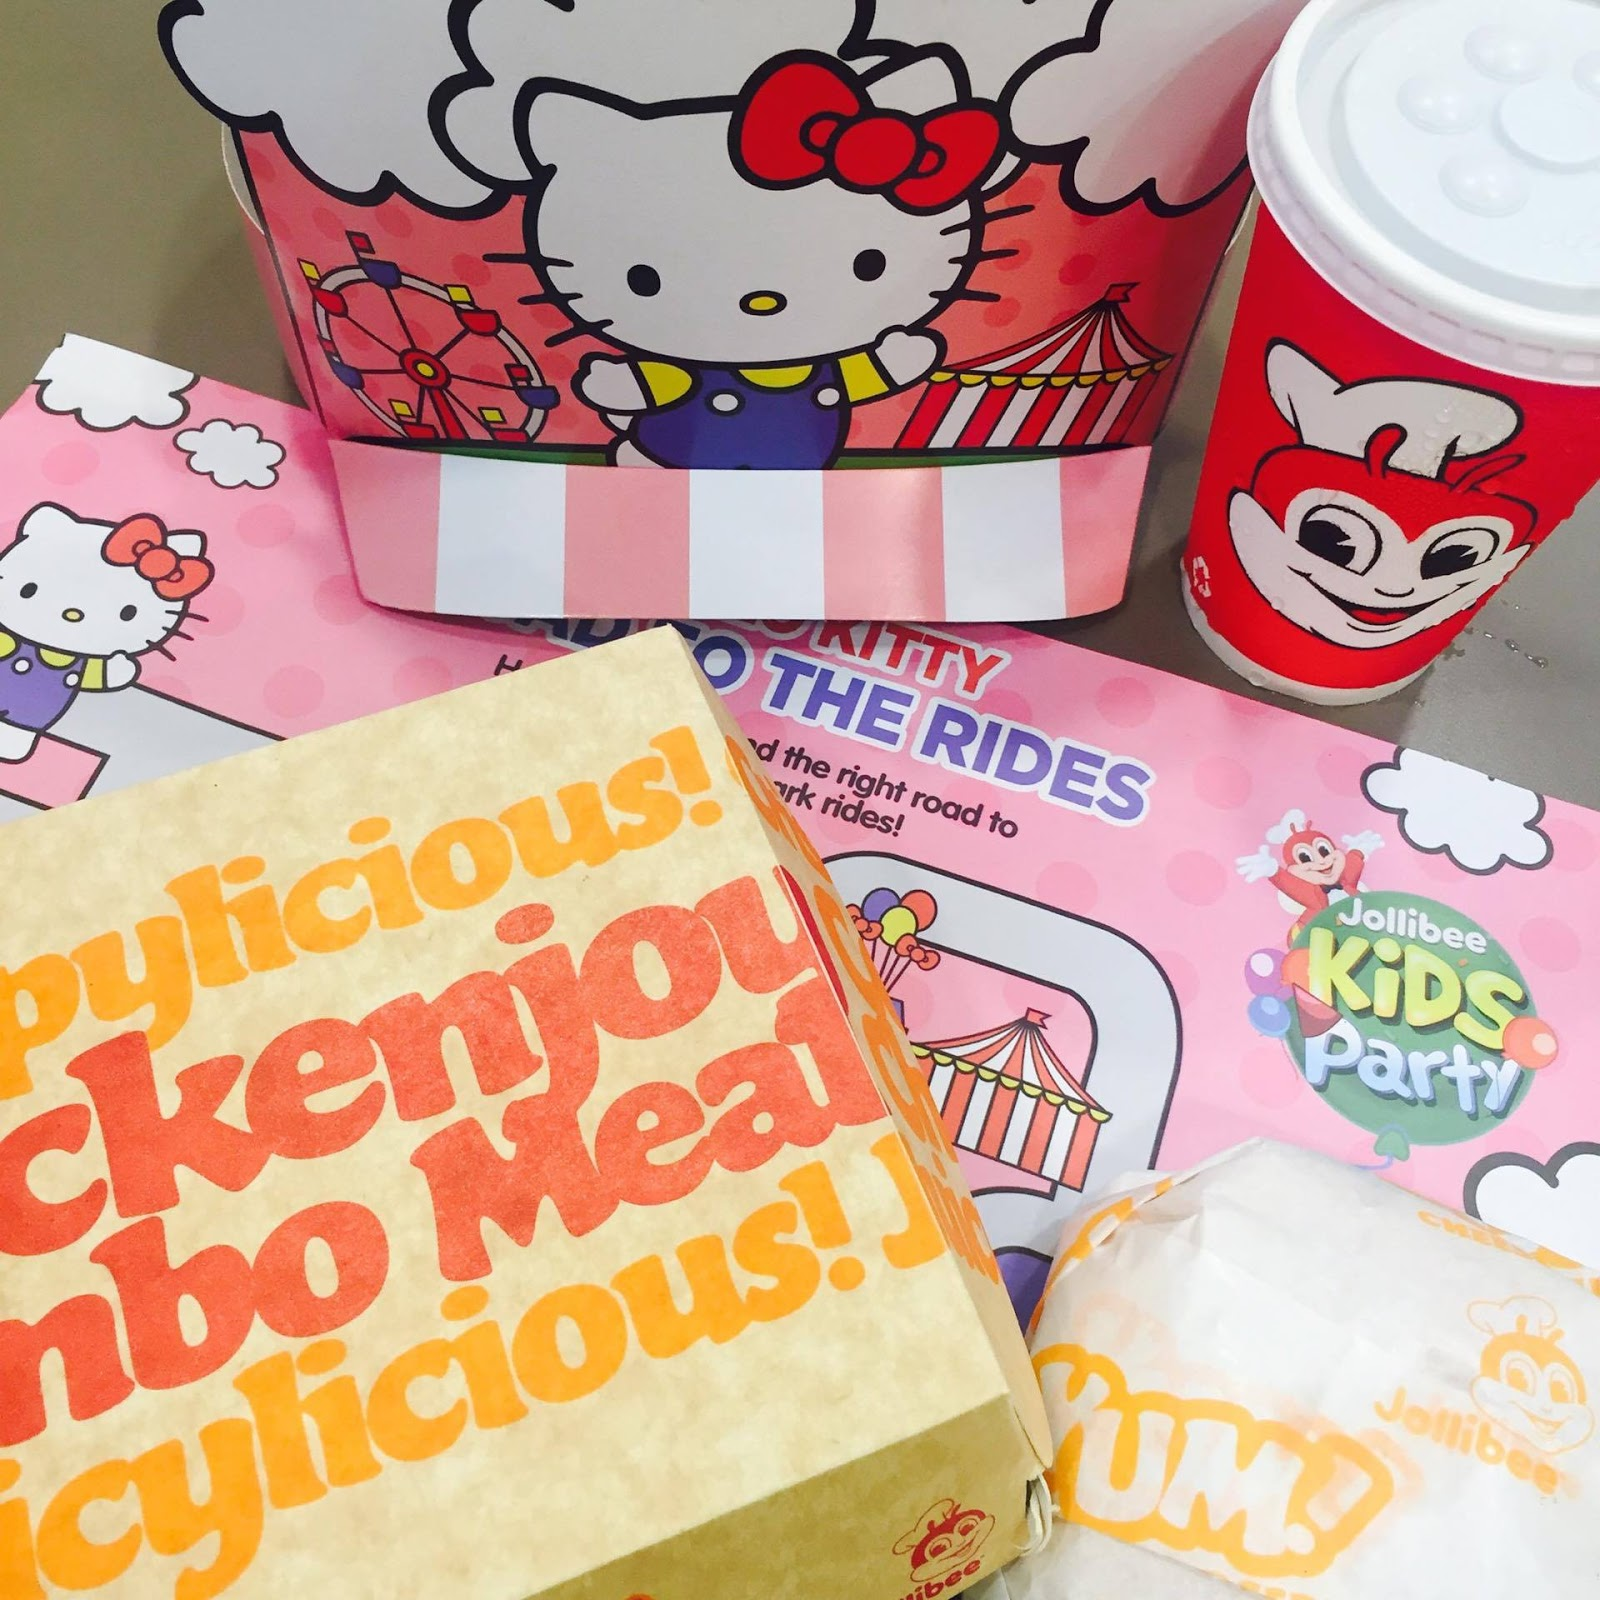 Jollibee Introduces Hello Kitty Fun Carnival Party